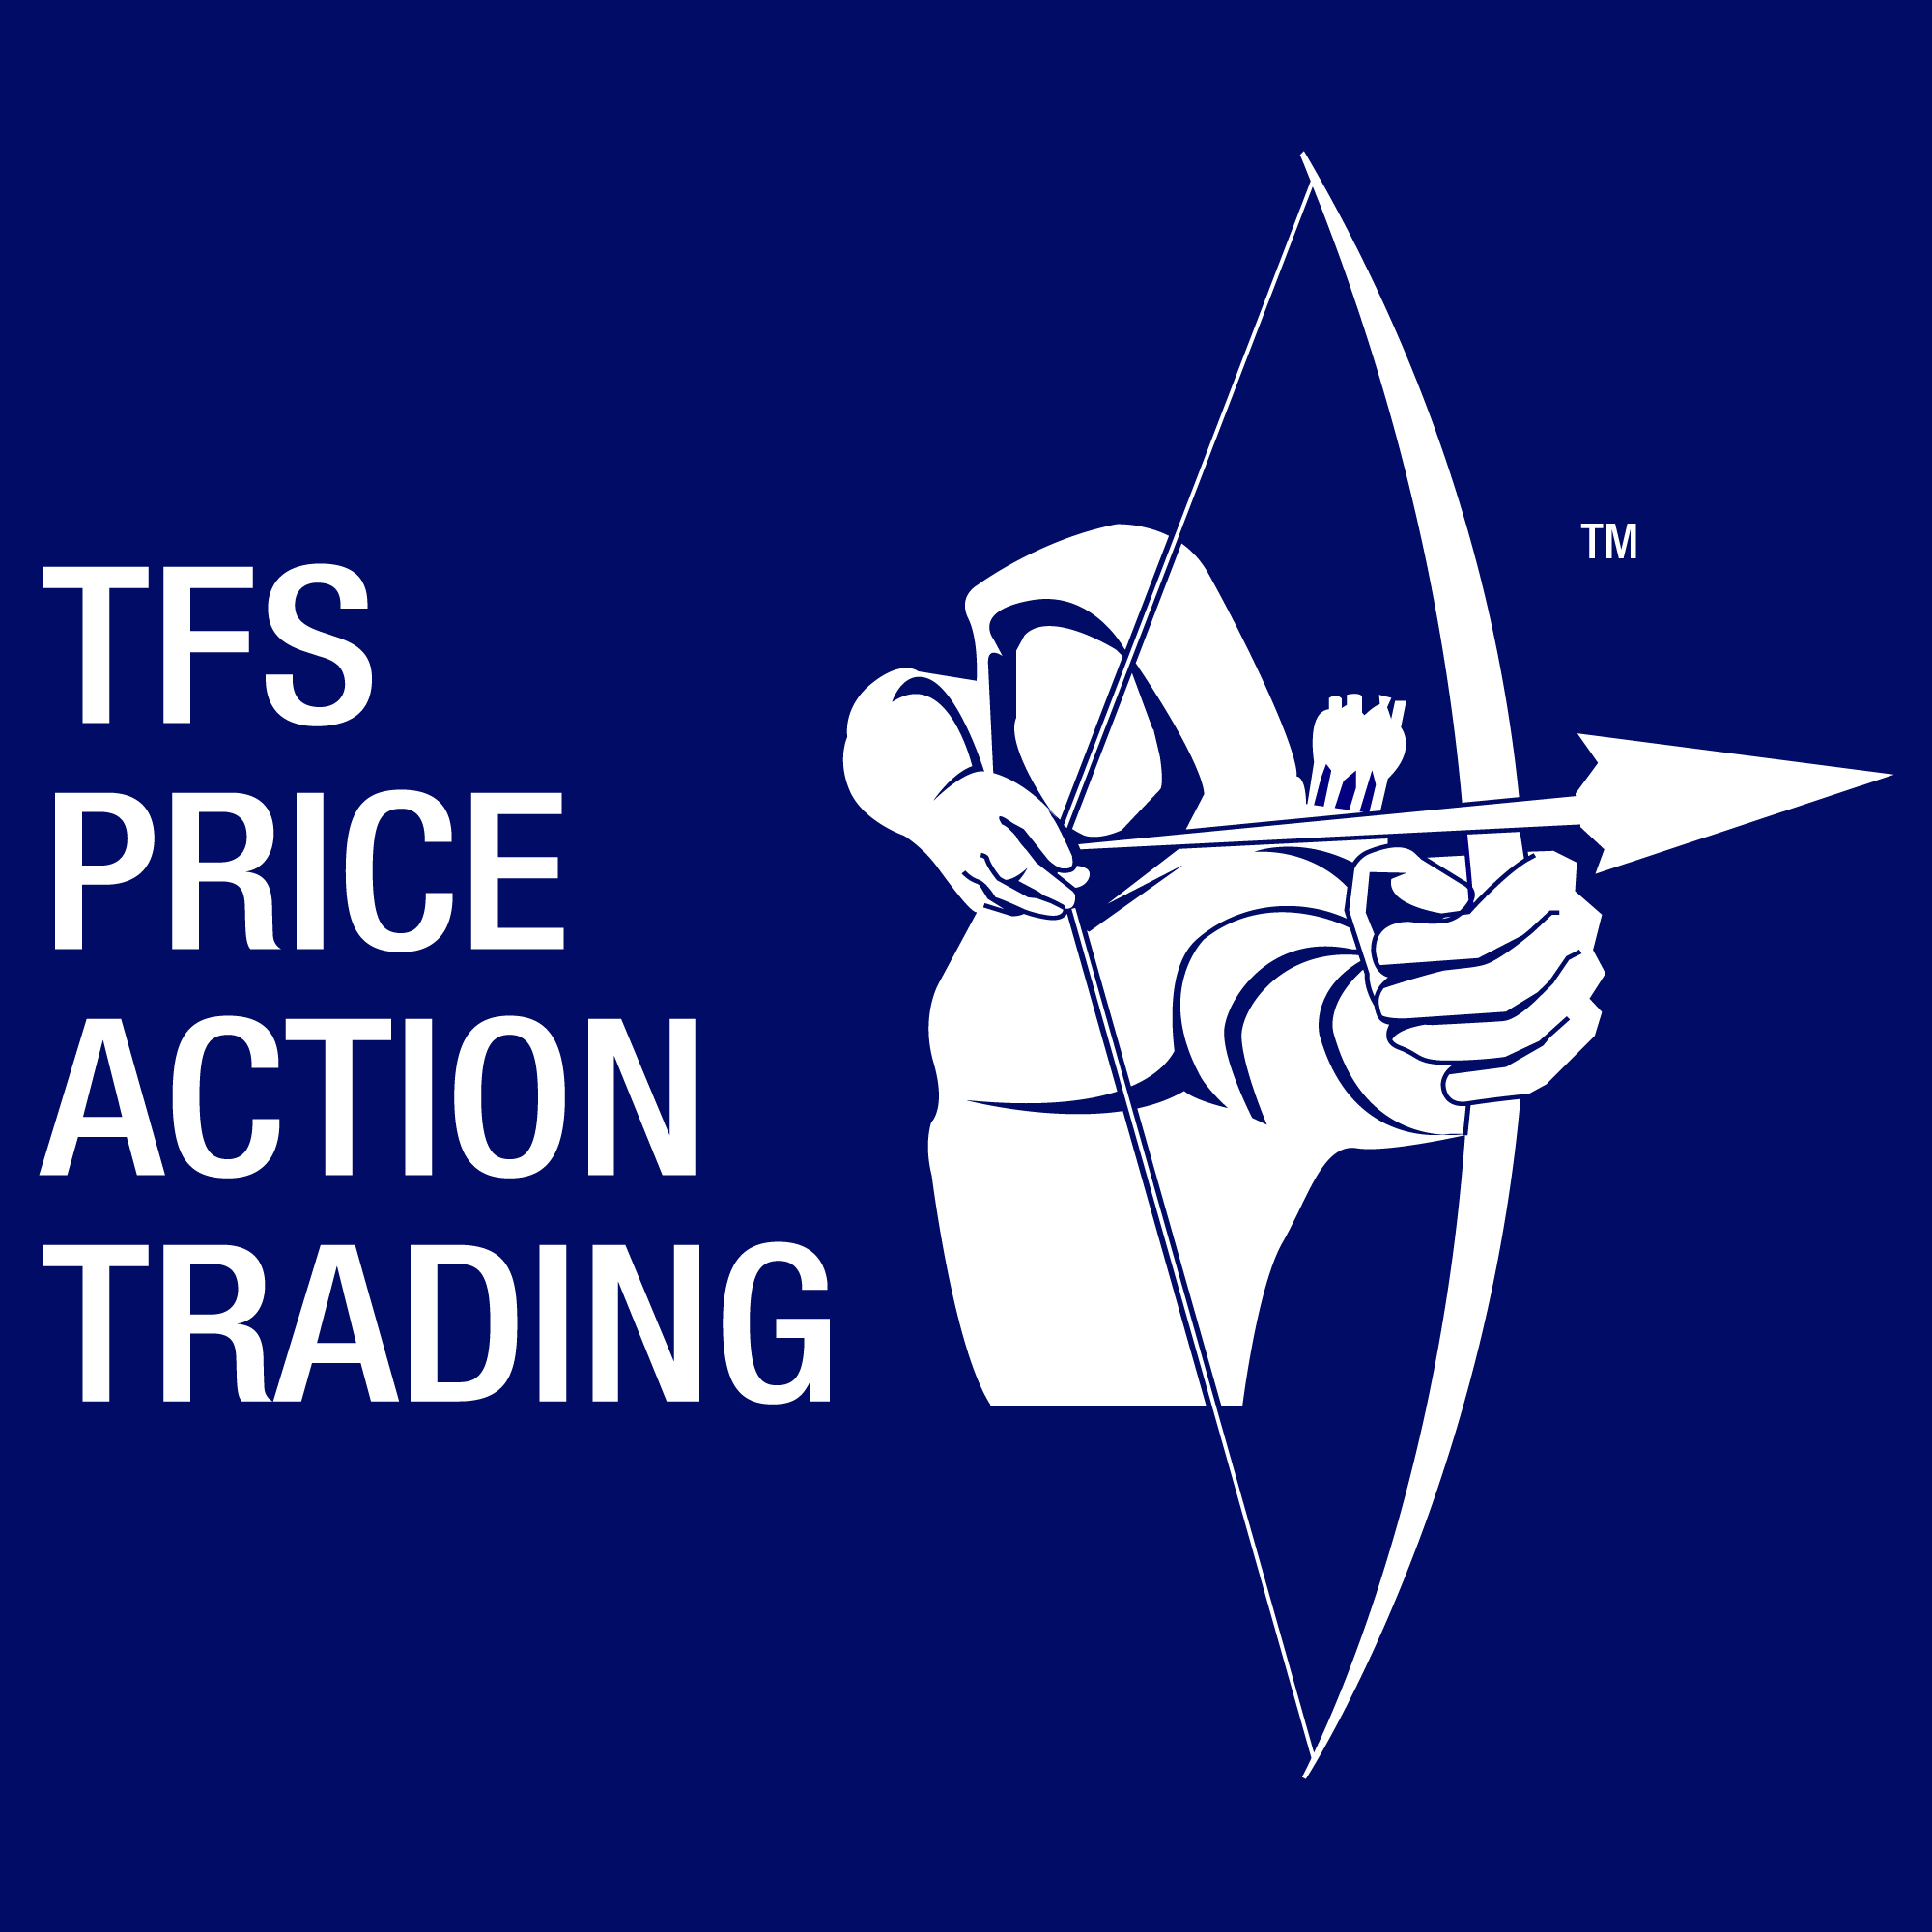 TFS PRICE ACTION TRADING